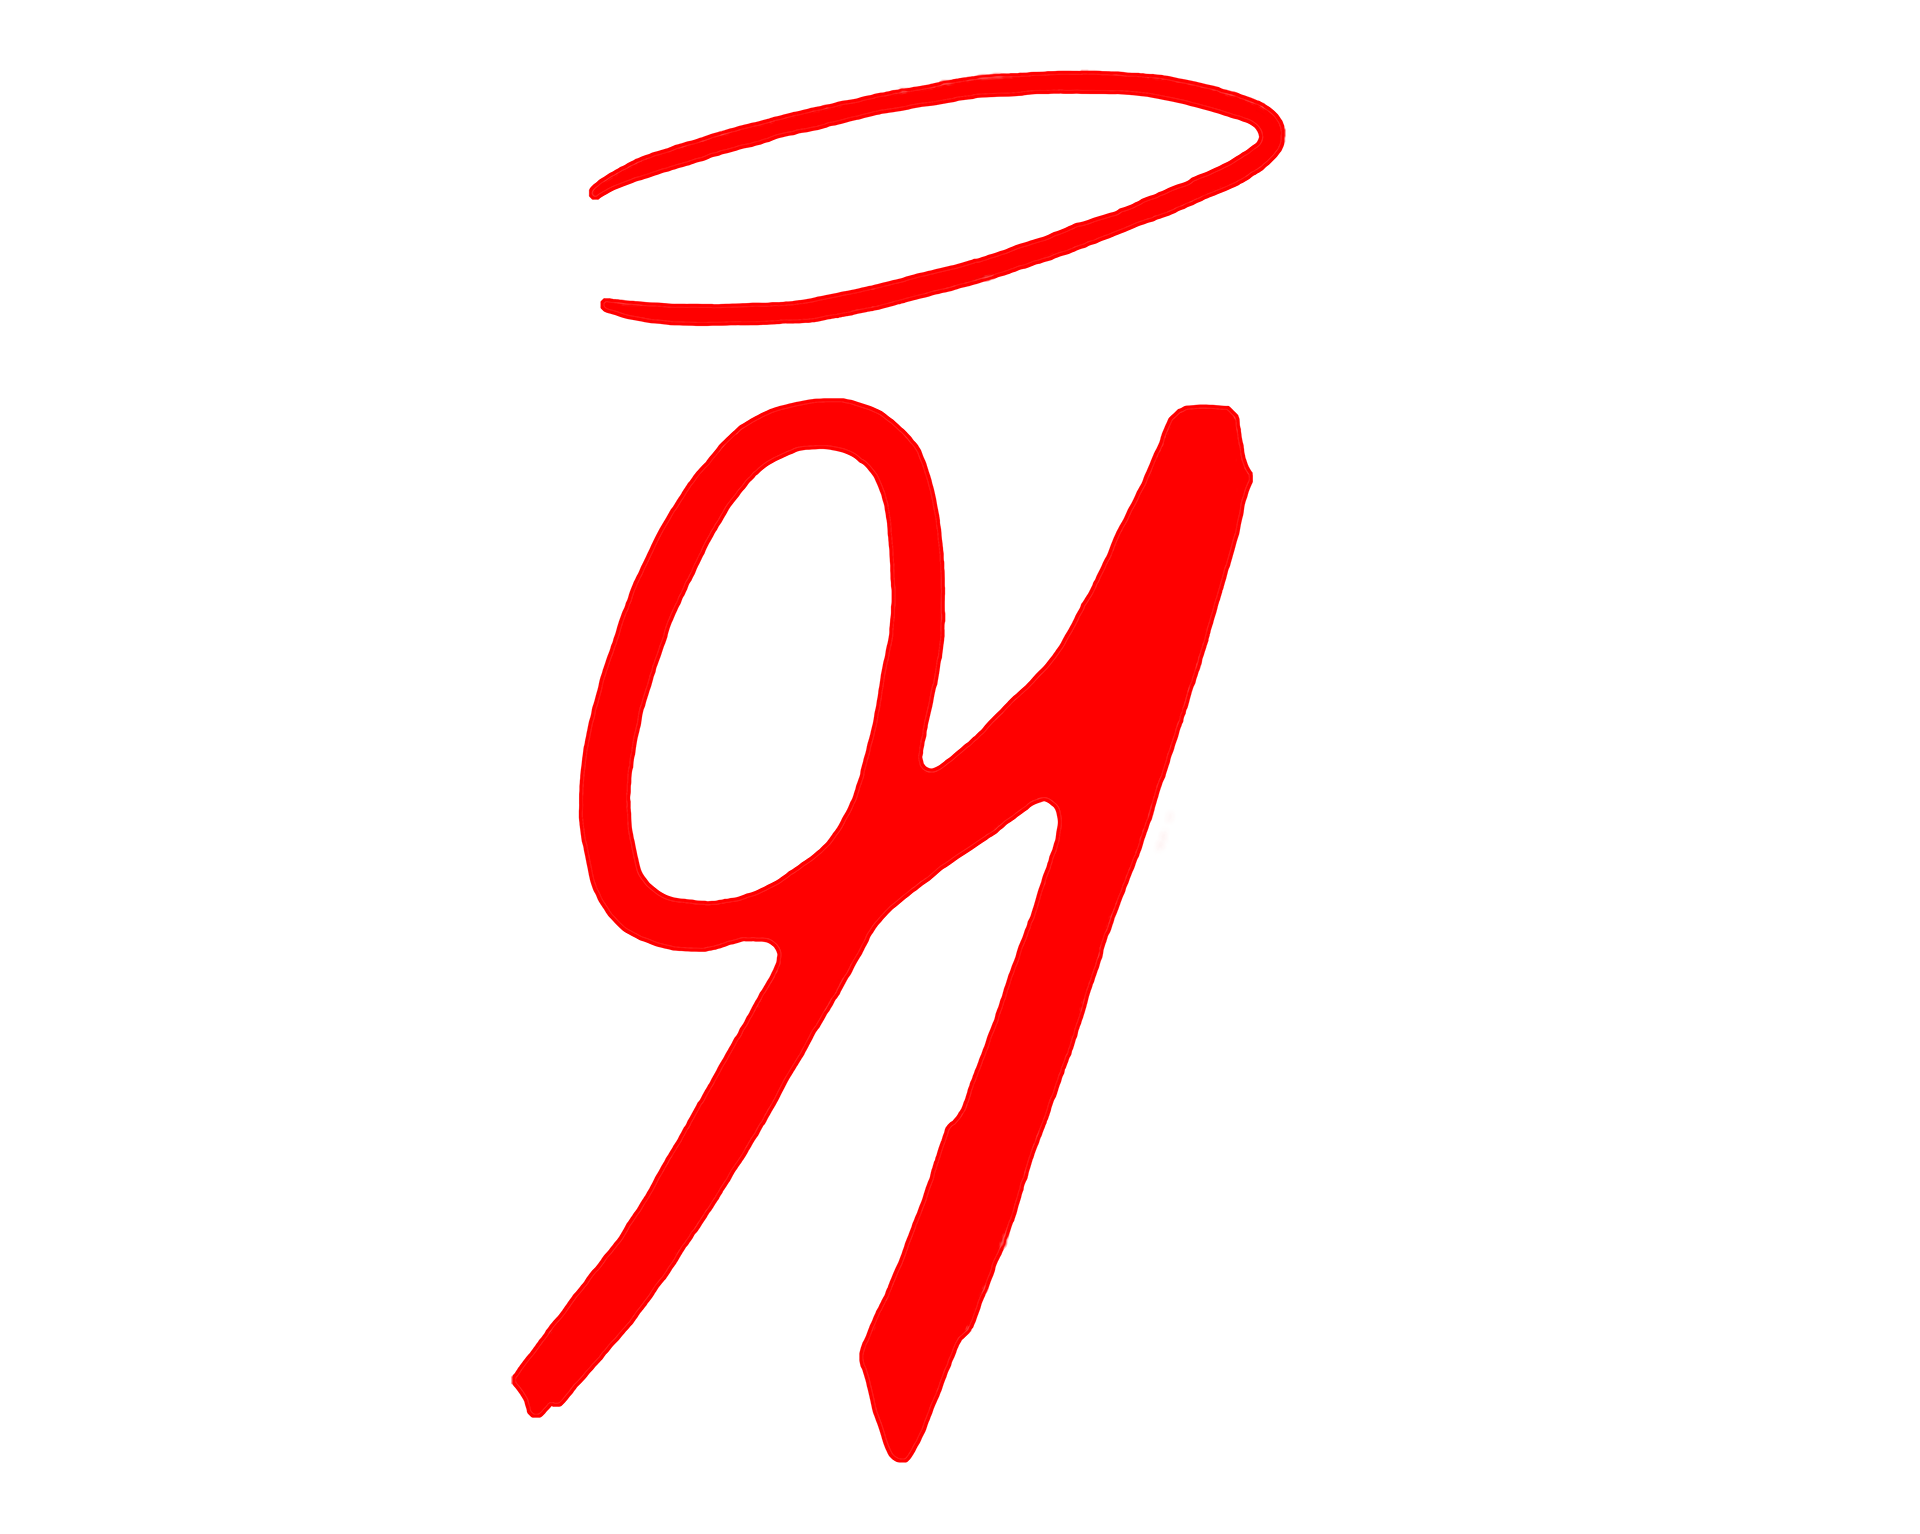 91 Apparel about us